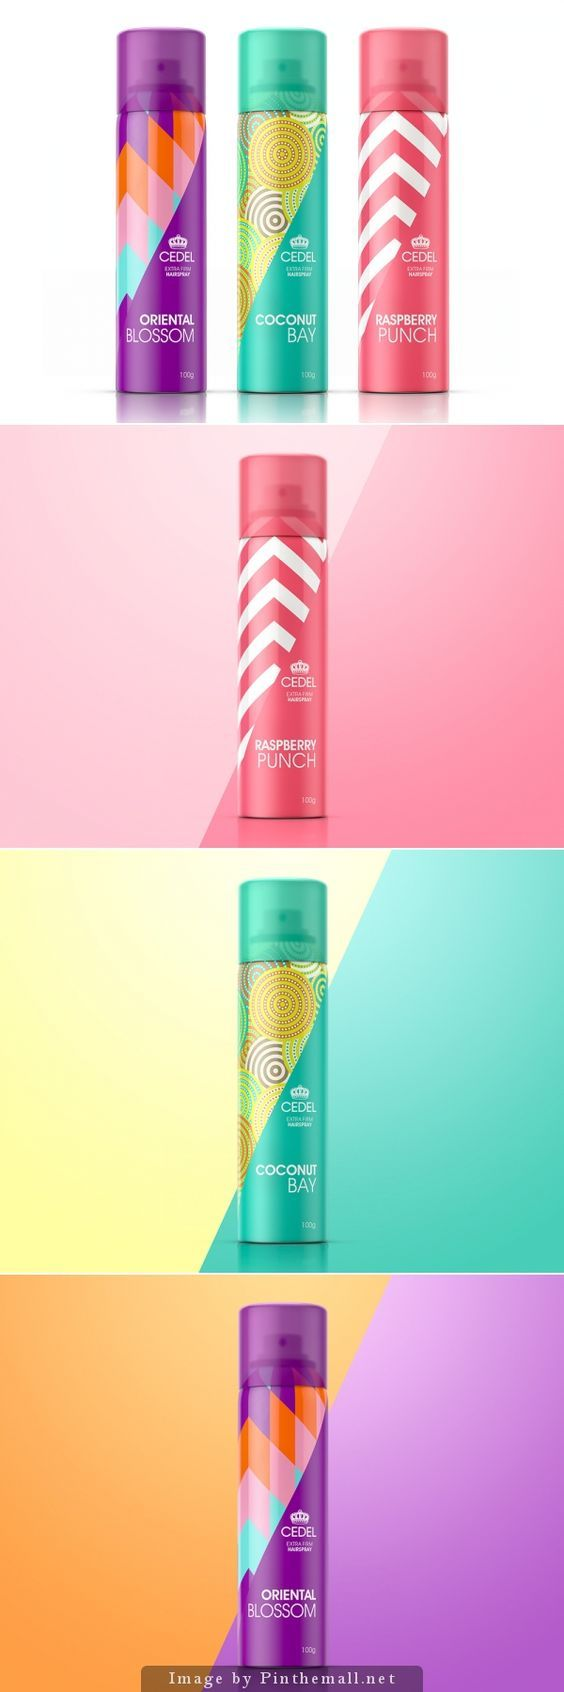 Cedel Scented Hairspray by Glen Crawforth #packaging #design: